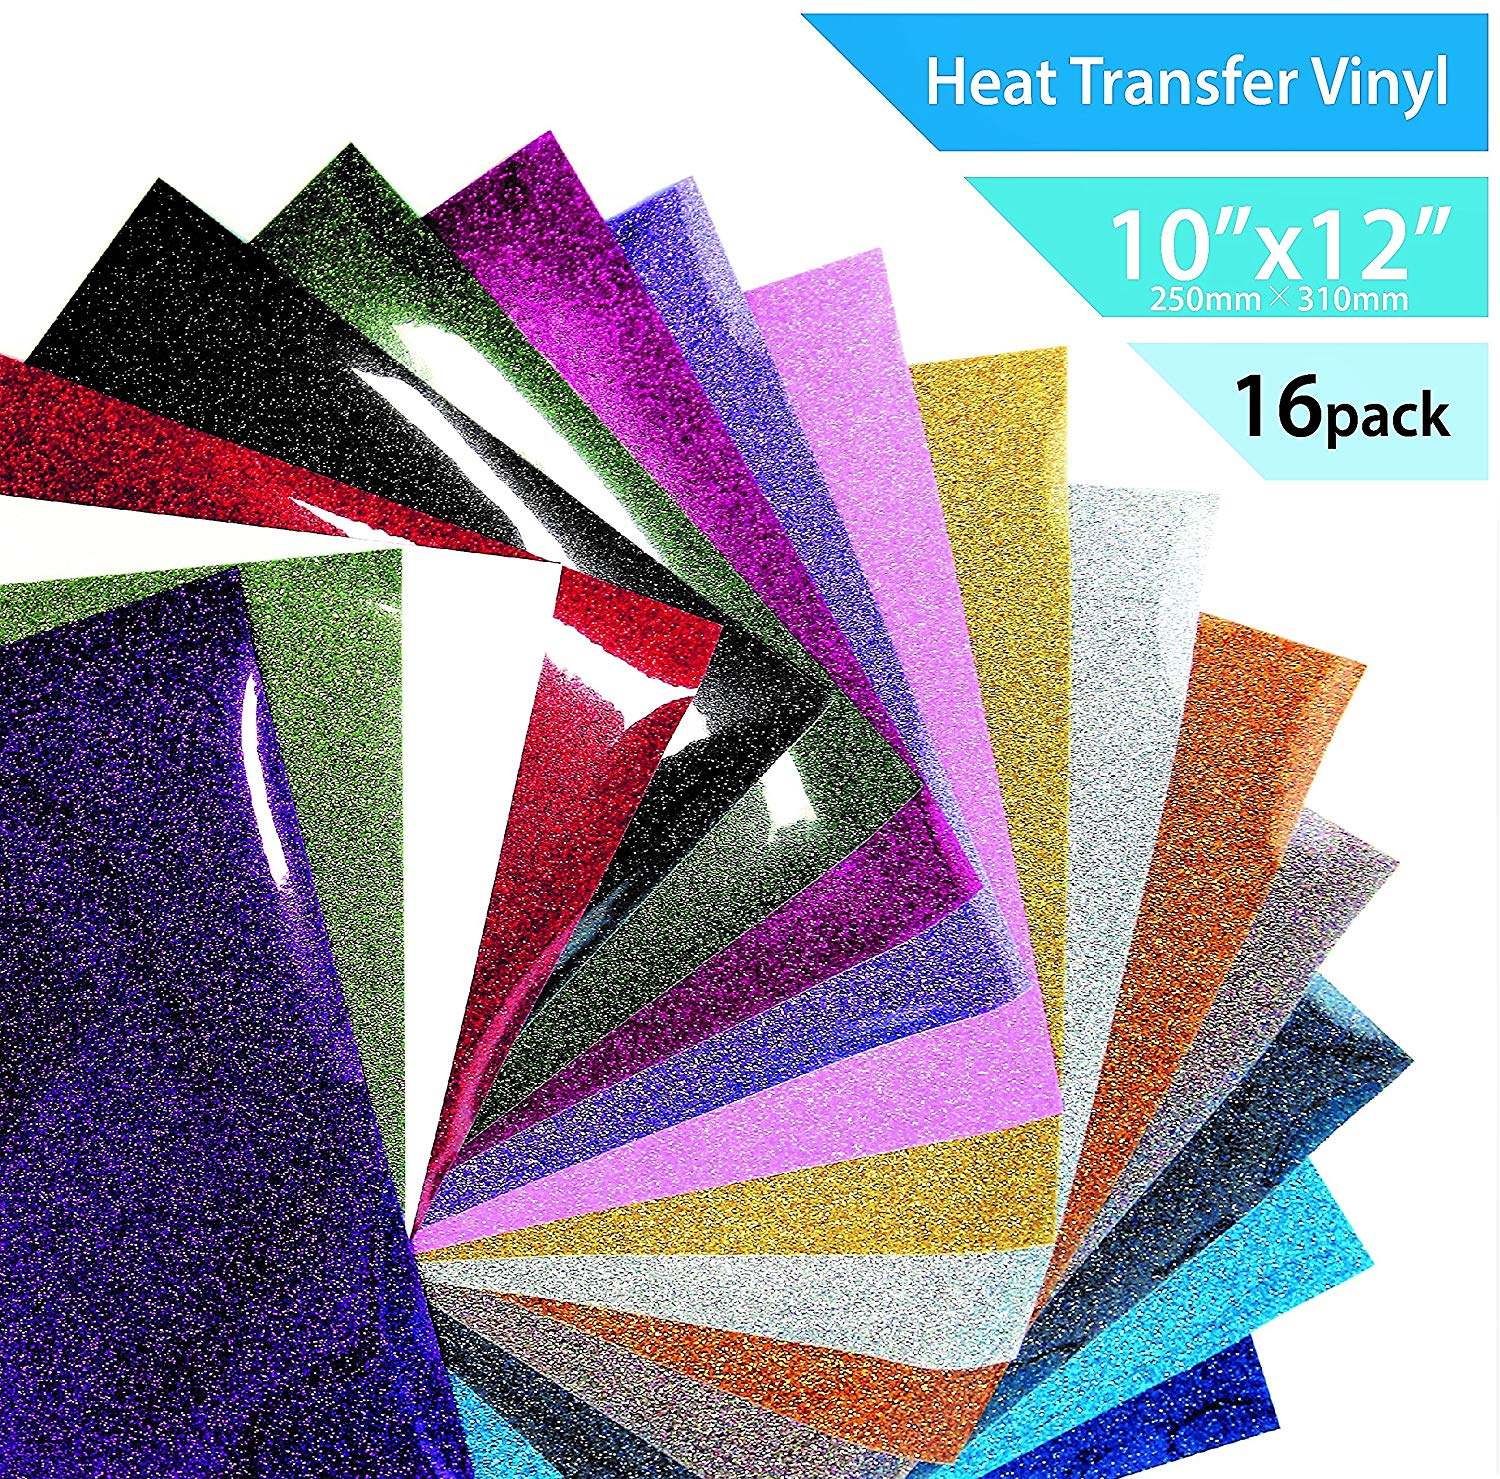 """T-Vinyl Glitter Heat Transfer Vinyl Sheets Set for DIY T-Shirts : 12""""×10""""- 16 Pack of 16 Assorted Brilliant Colors – Best Iron On T-Vinyl Bundle for Cricut, Silhouette Cameo and Other Vinyl Cutters"""